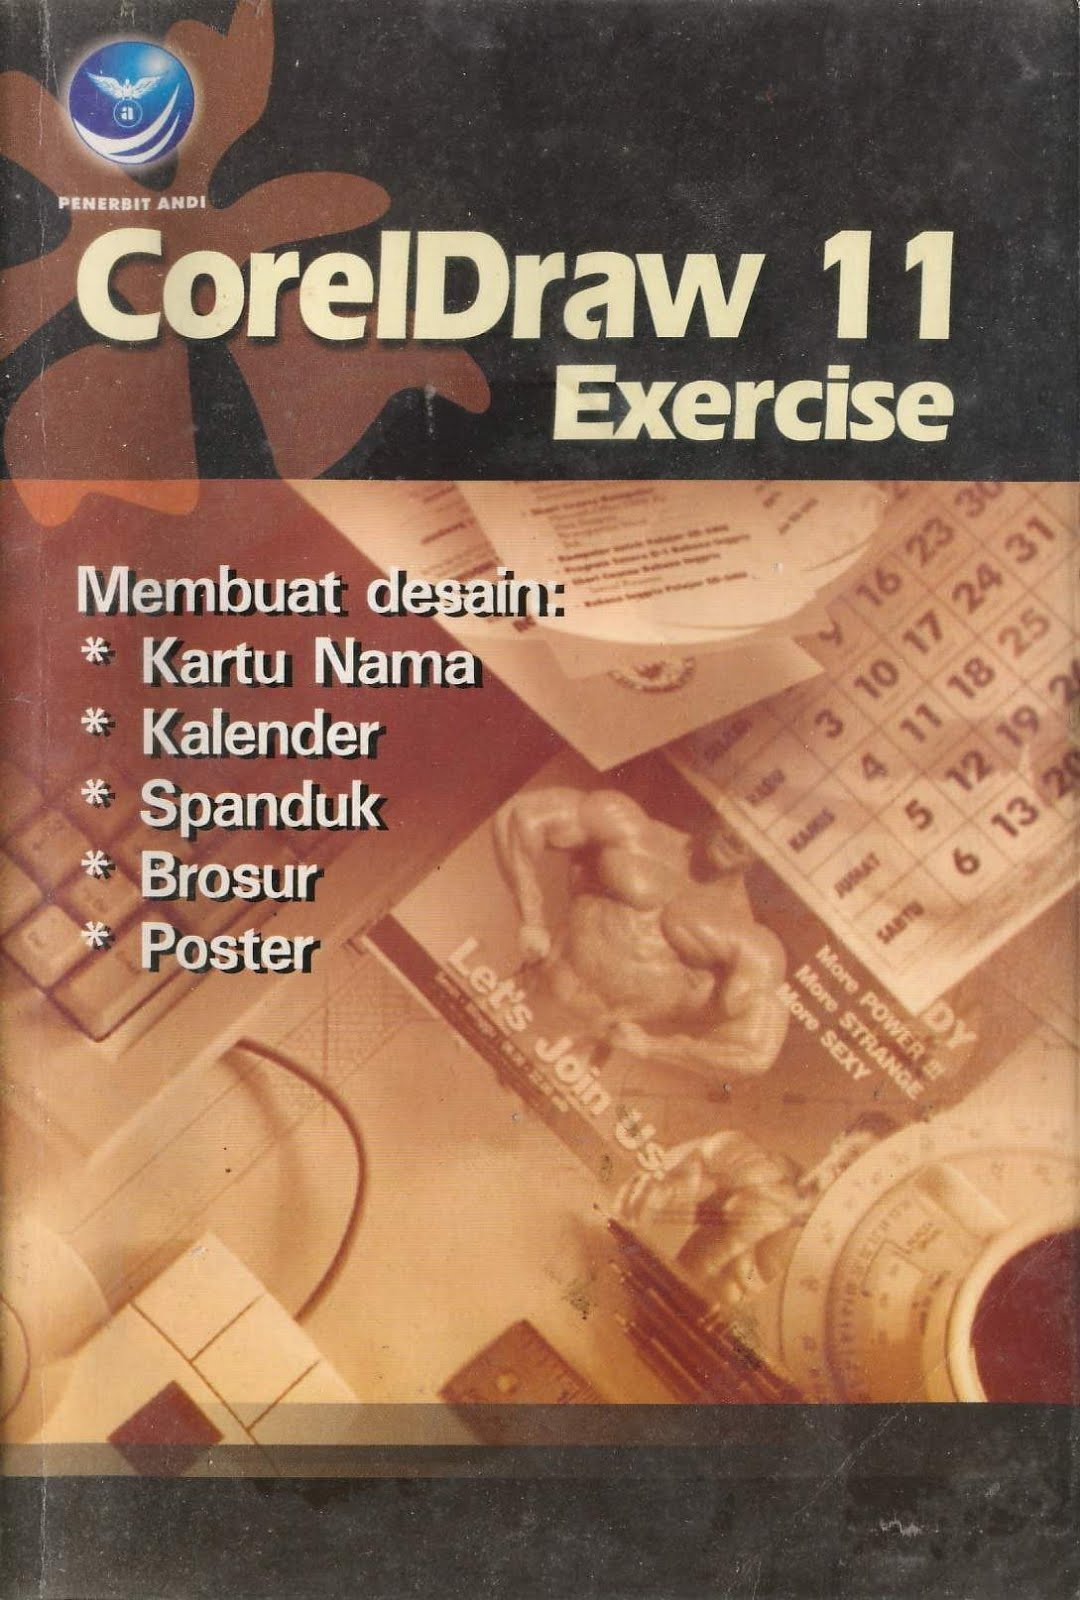 CorelDraw 11 Exercise